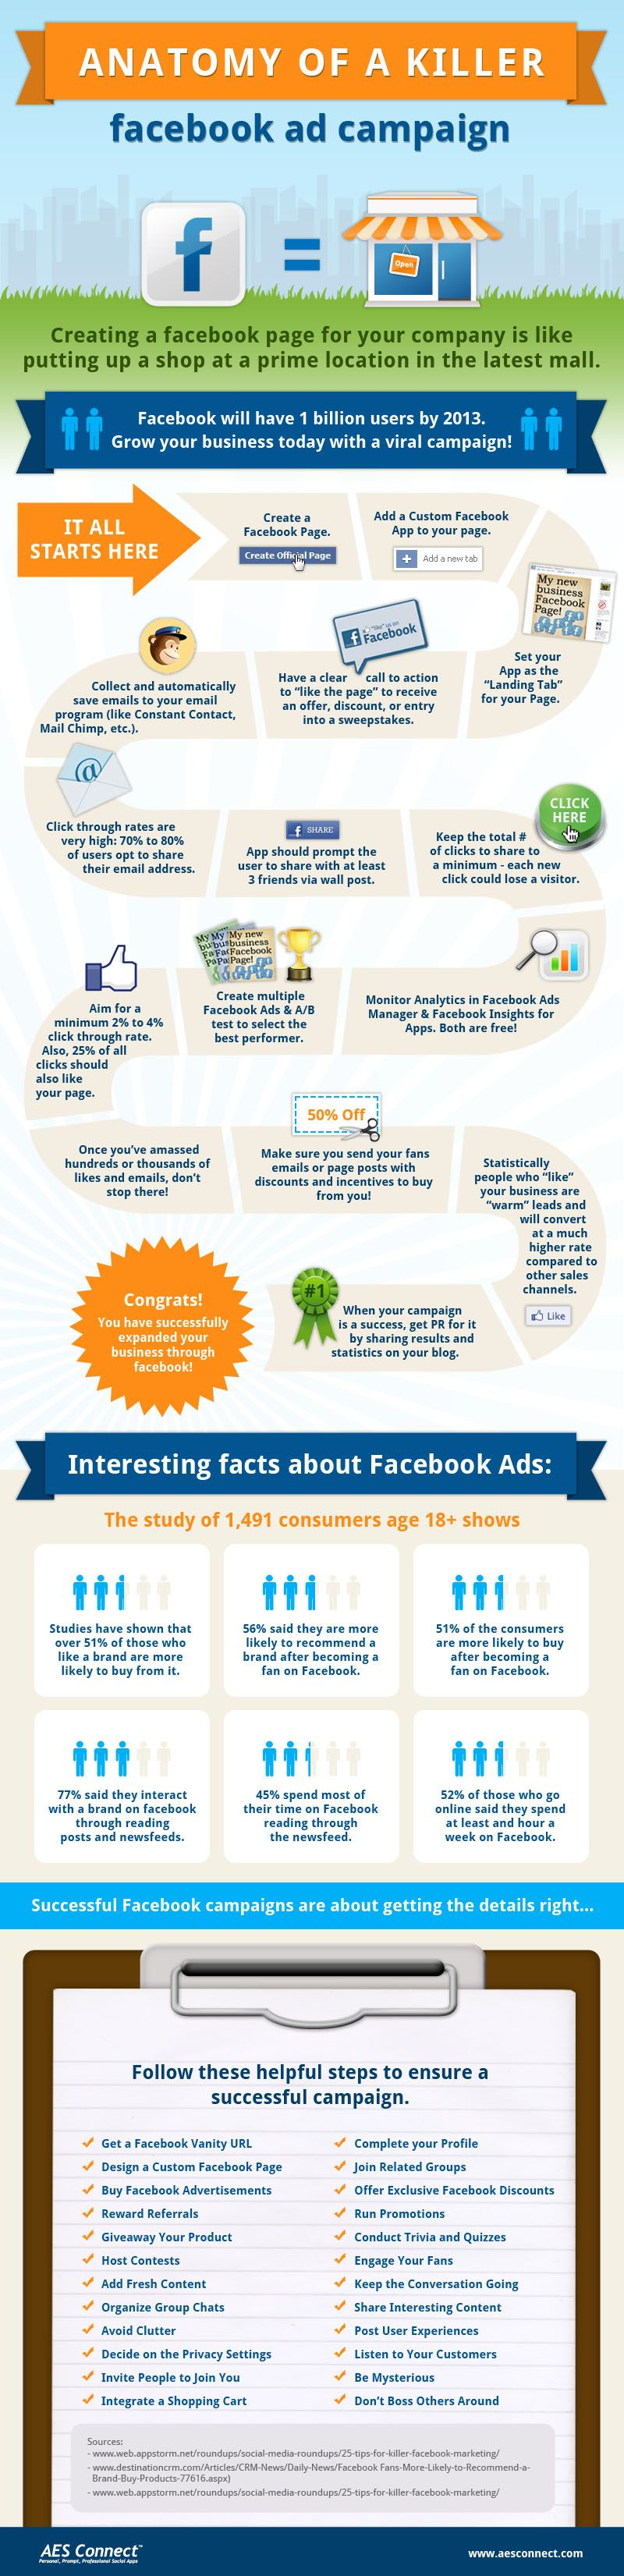 Anatomy of a Killer FaceBook Ad Campaign. #Infographic